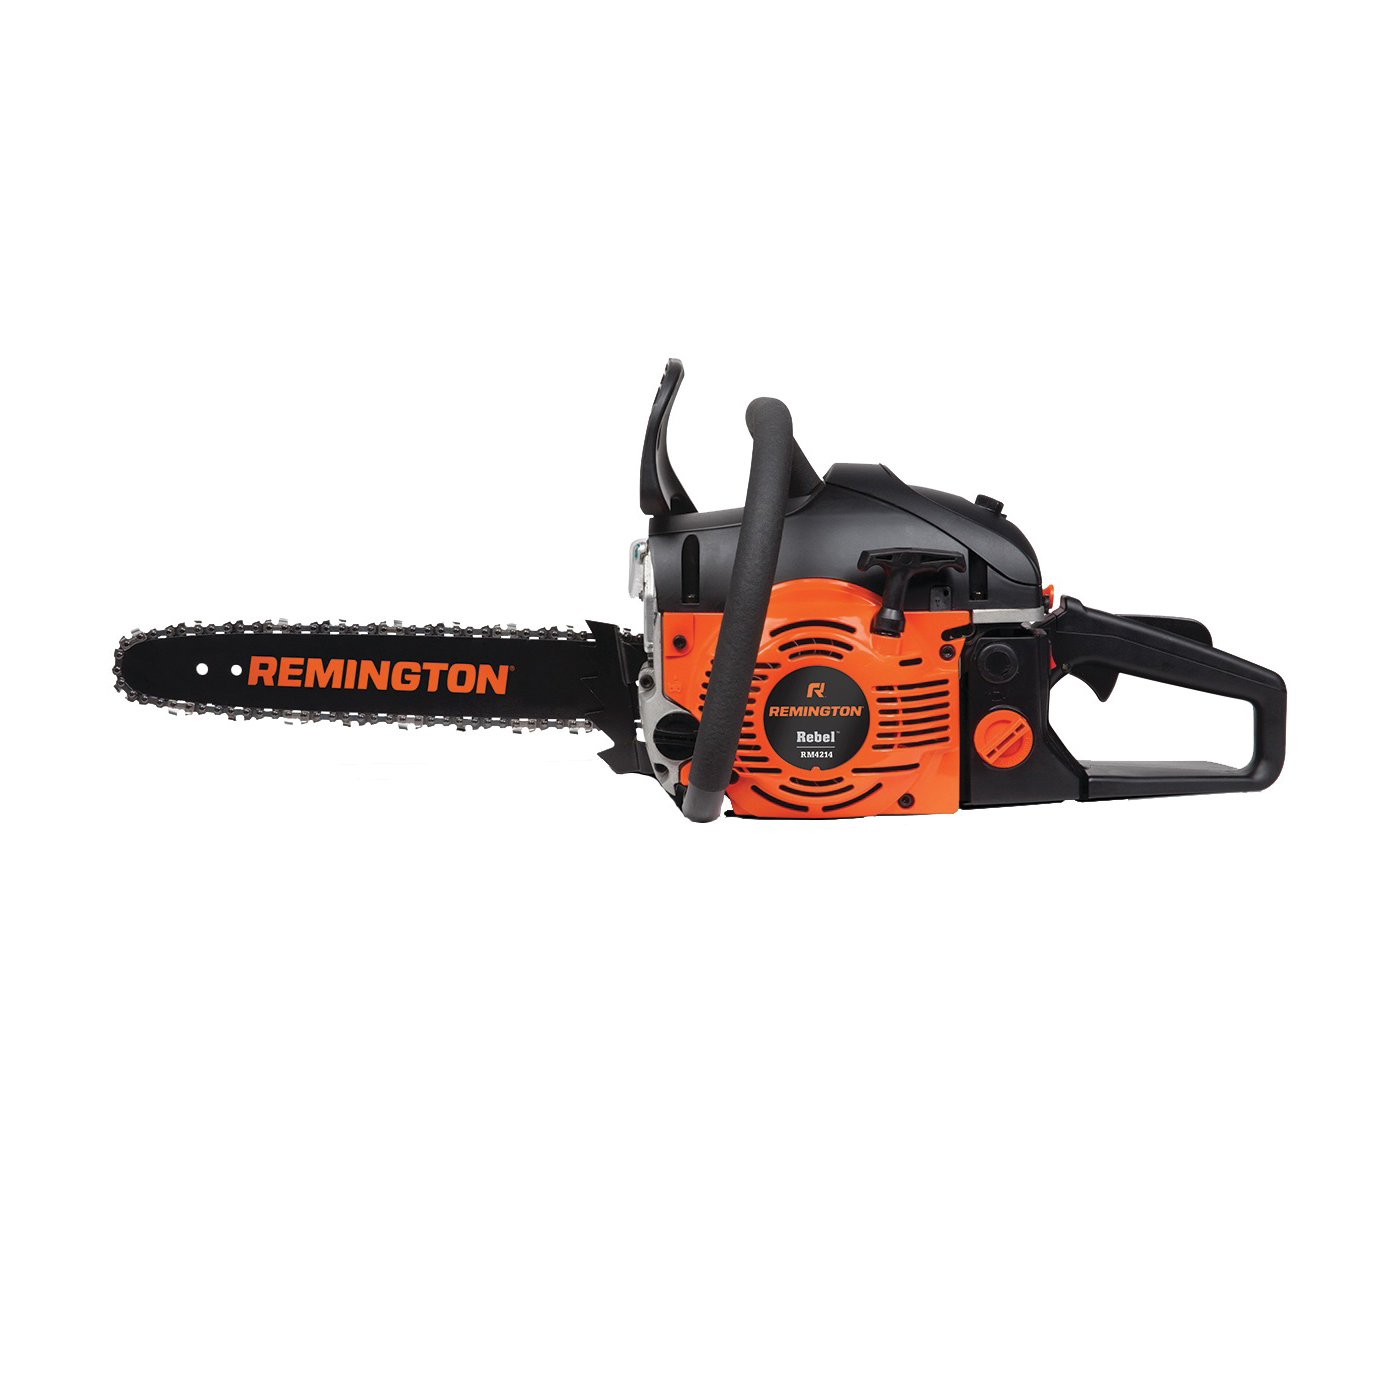 Picture of Remington 41AY469S983 Chainsaw, Gas, 46 cc Engine Displacement, 18 in L Bar/Chain, Cushion-Grip Handle